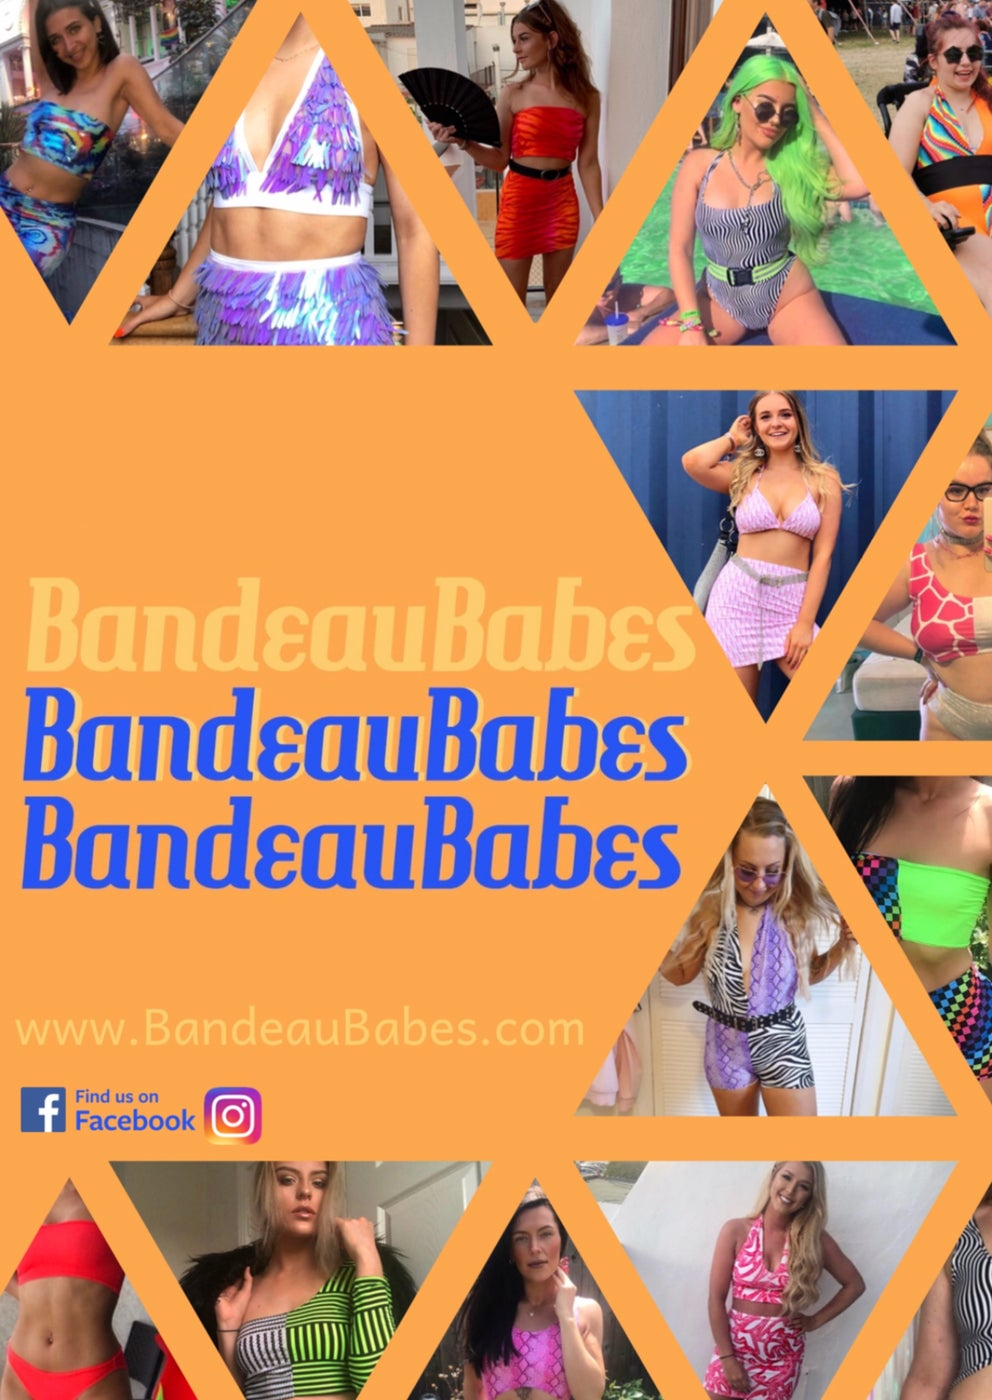 Welcome to BandeauBabes